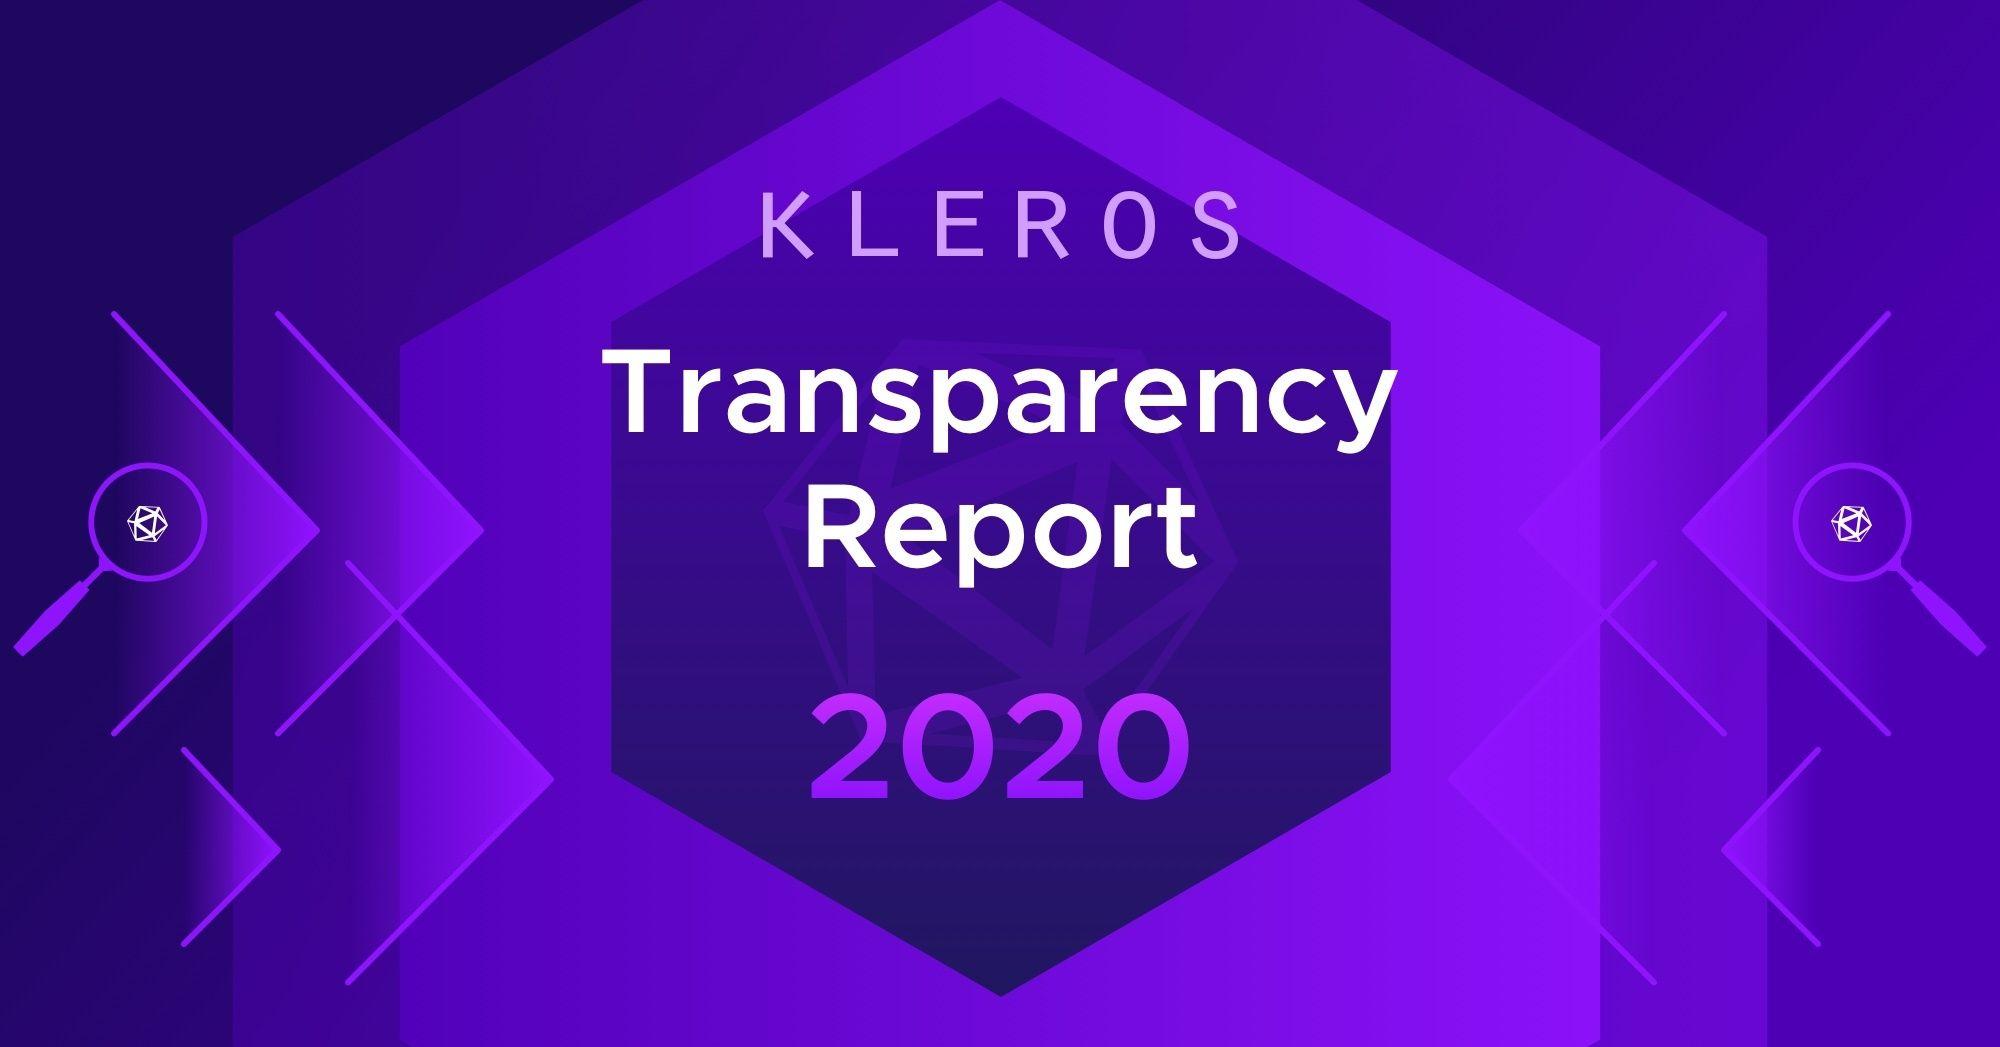 Kleros Annual Transparency Report 2020